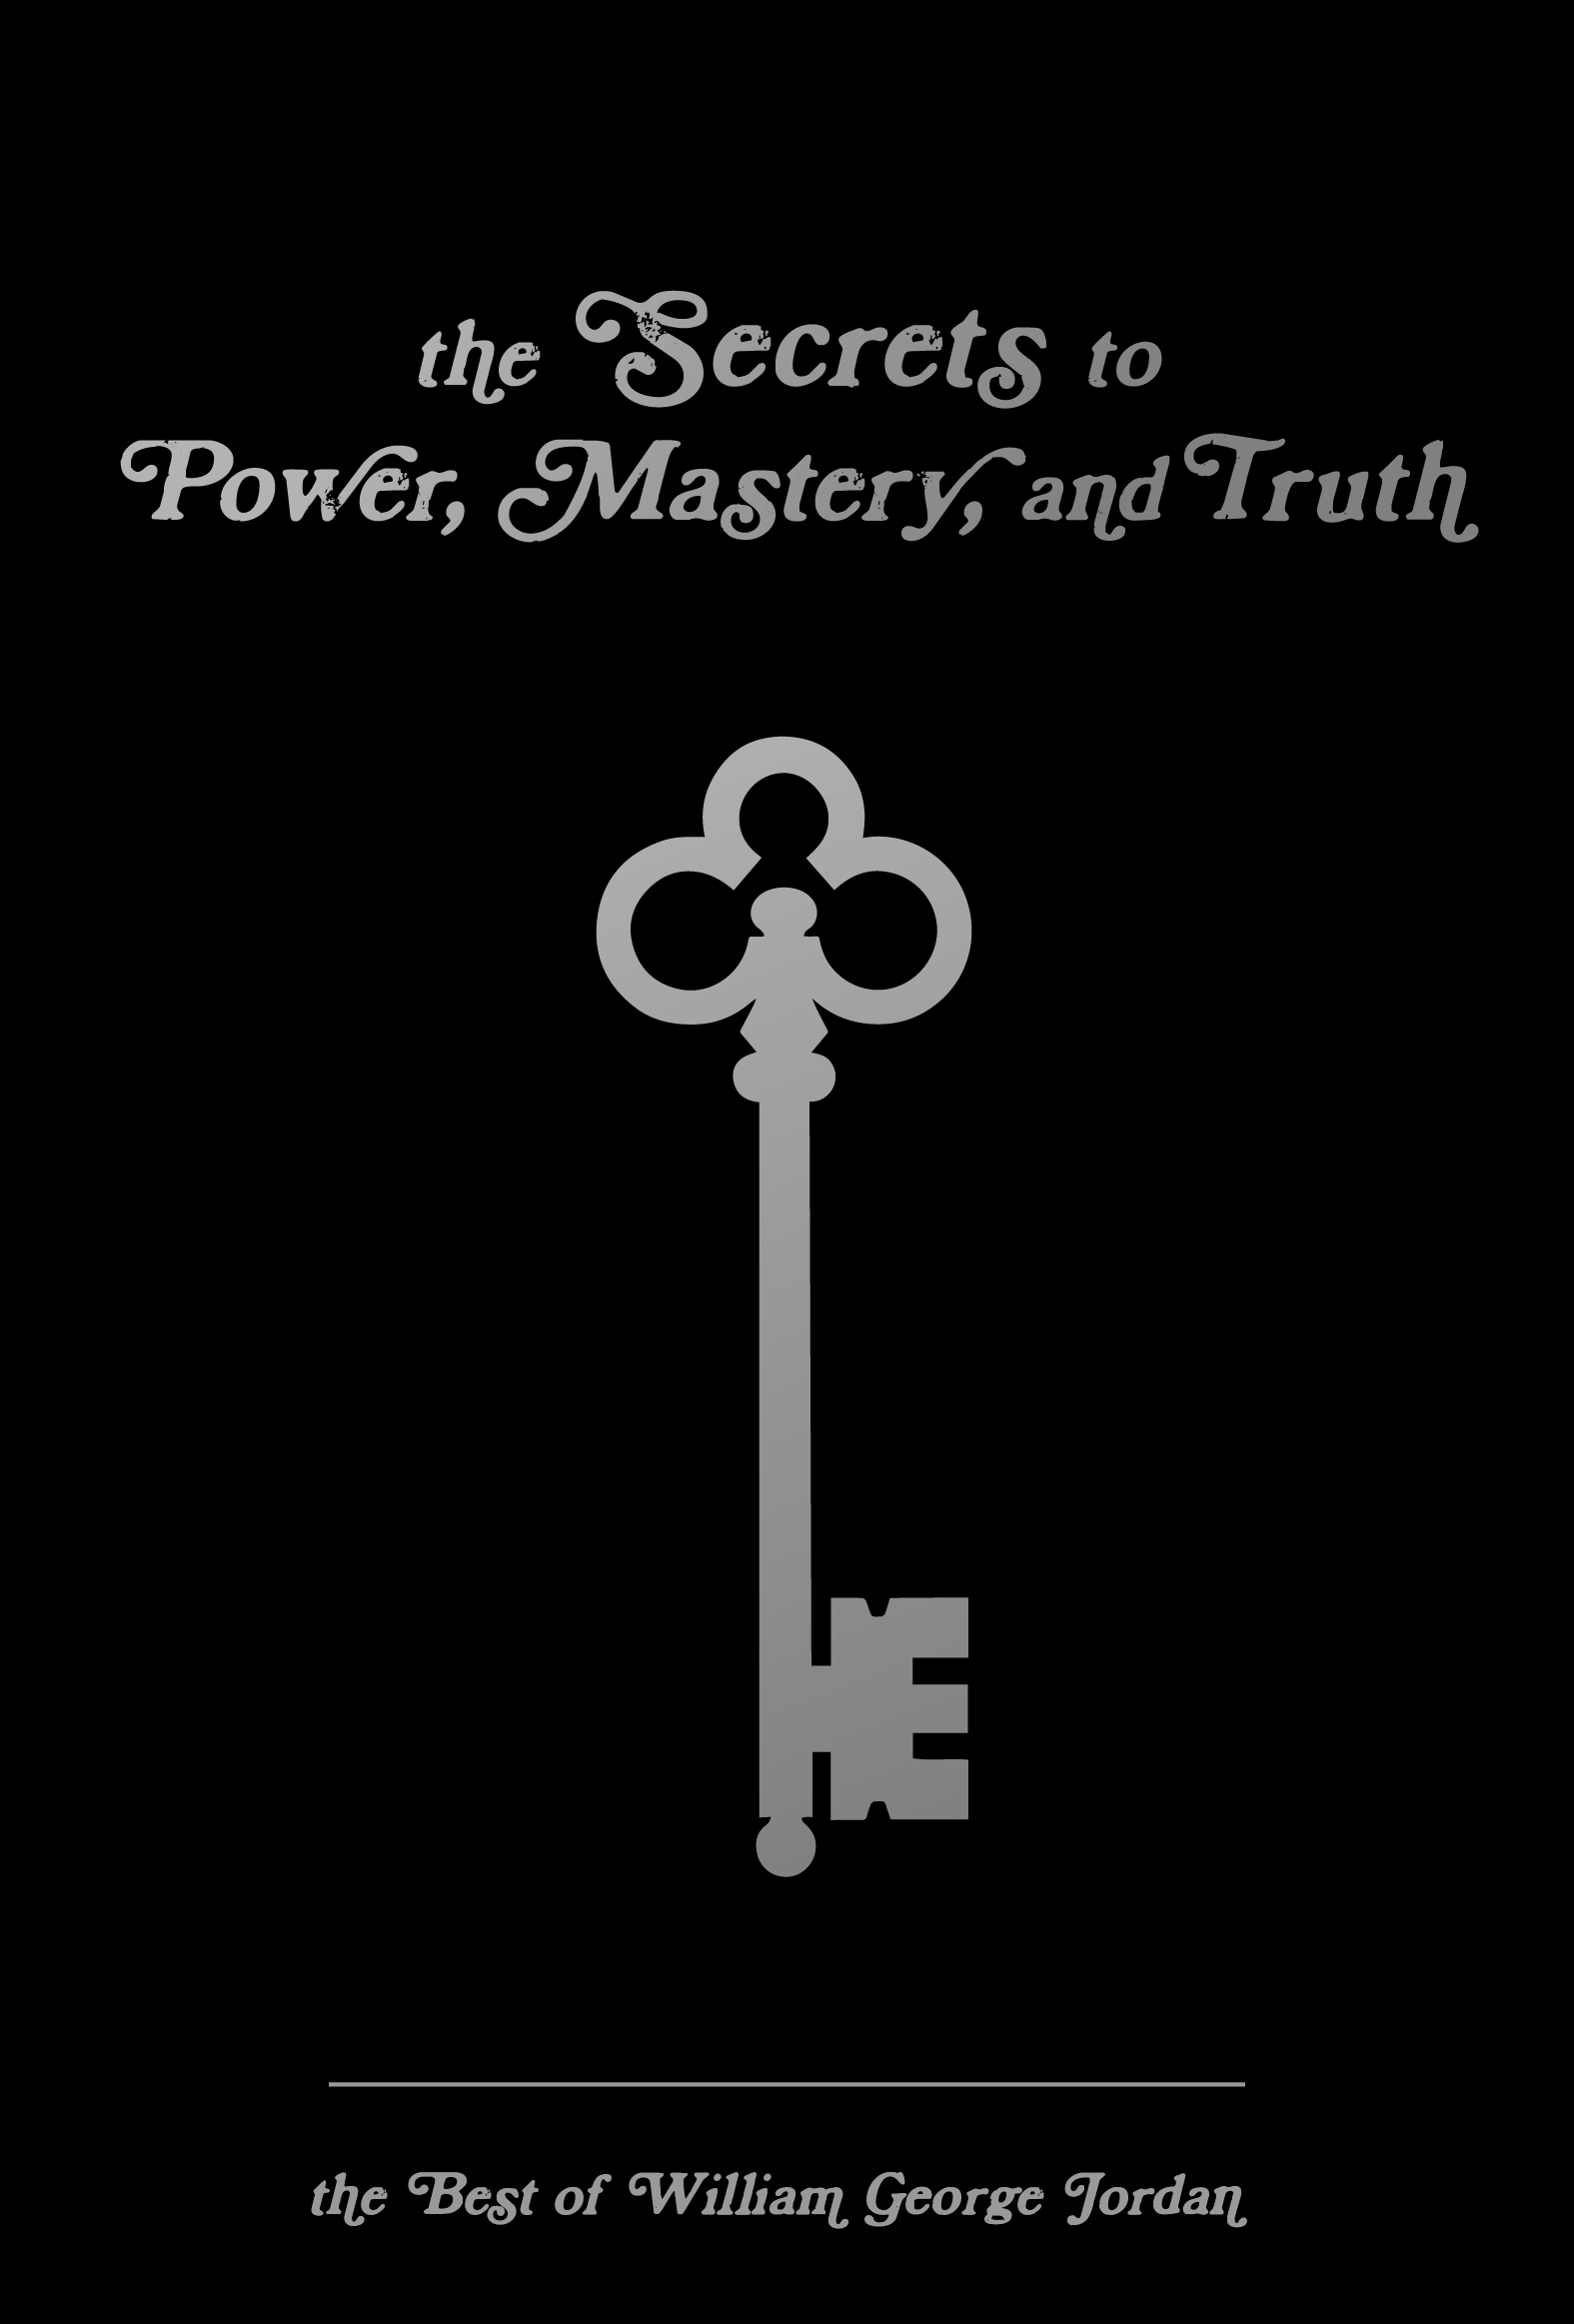 A book cover of  The Secrets to Power, Mastery, and Truth by William George Jordan.